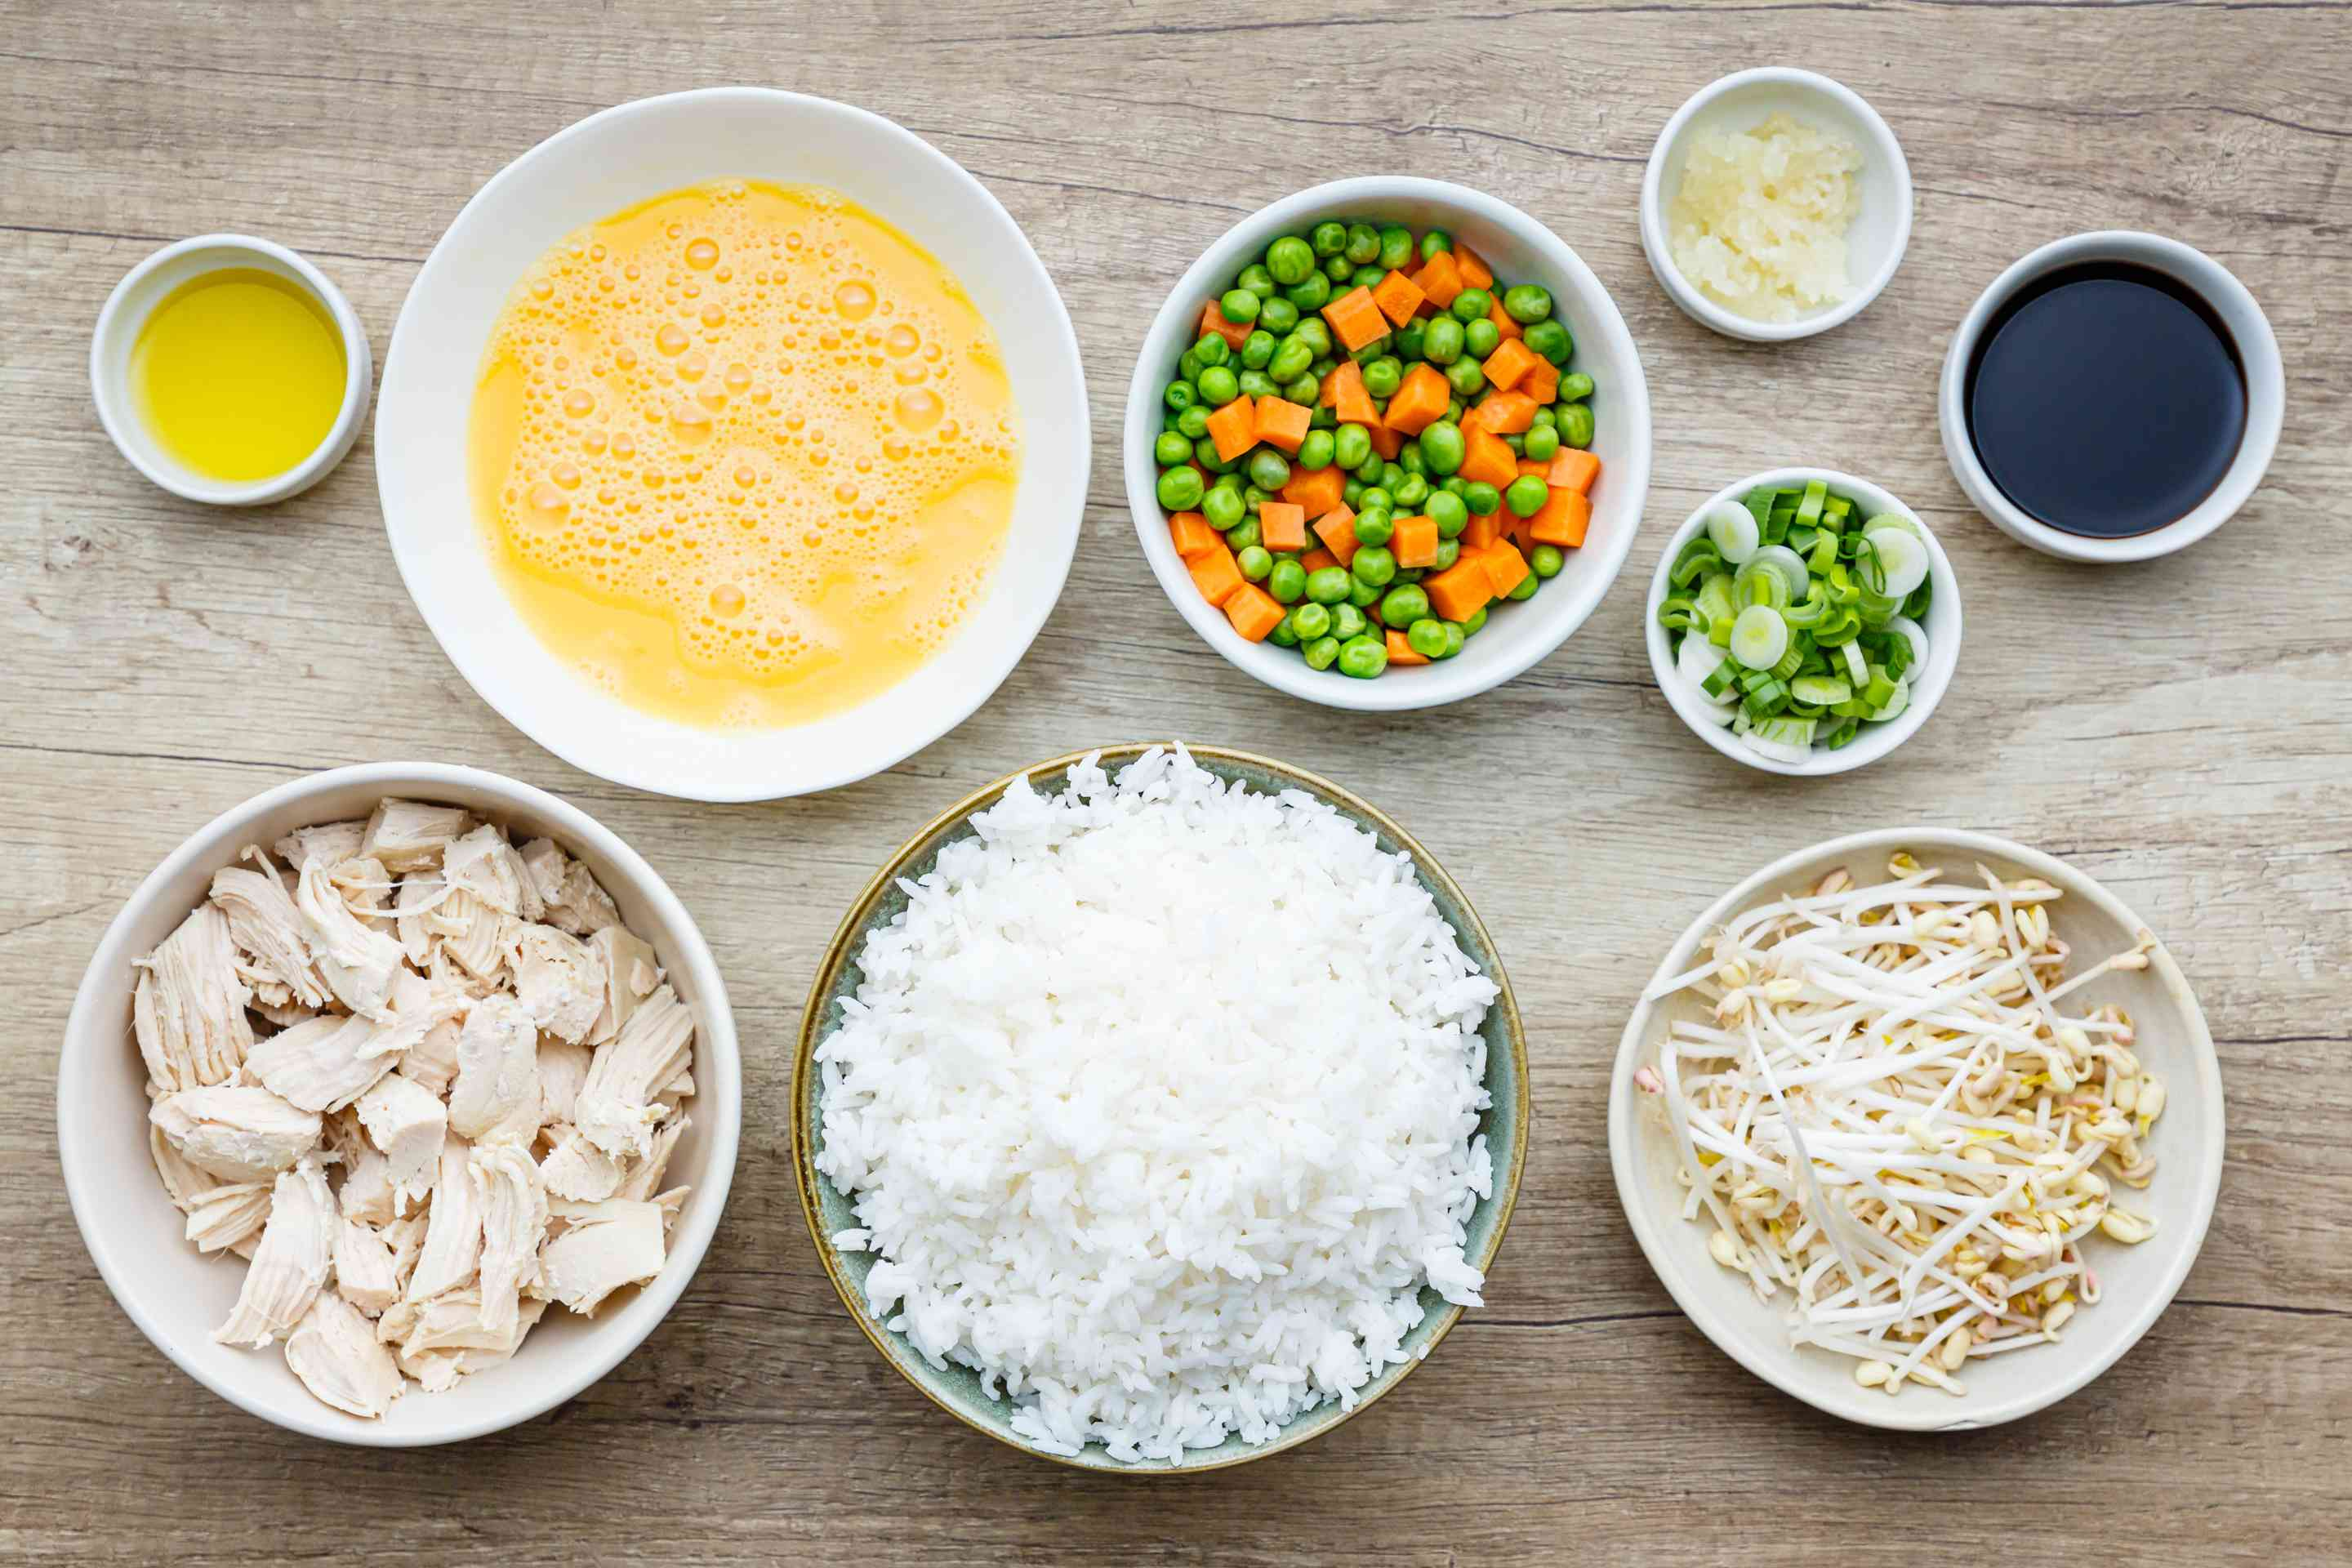 Ingredients for easy chicken fried rice